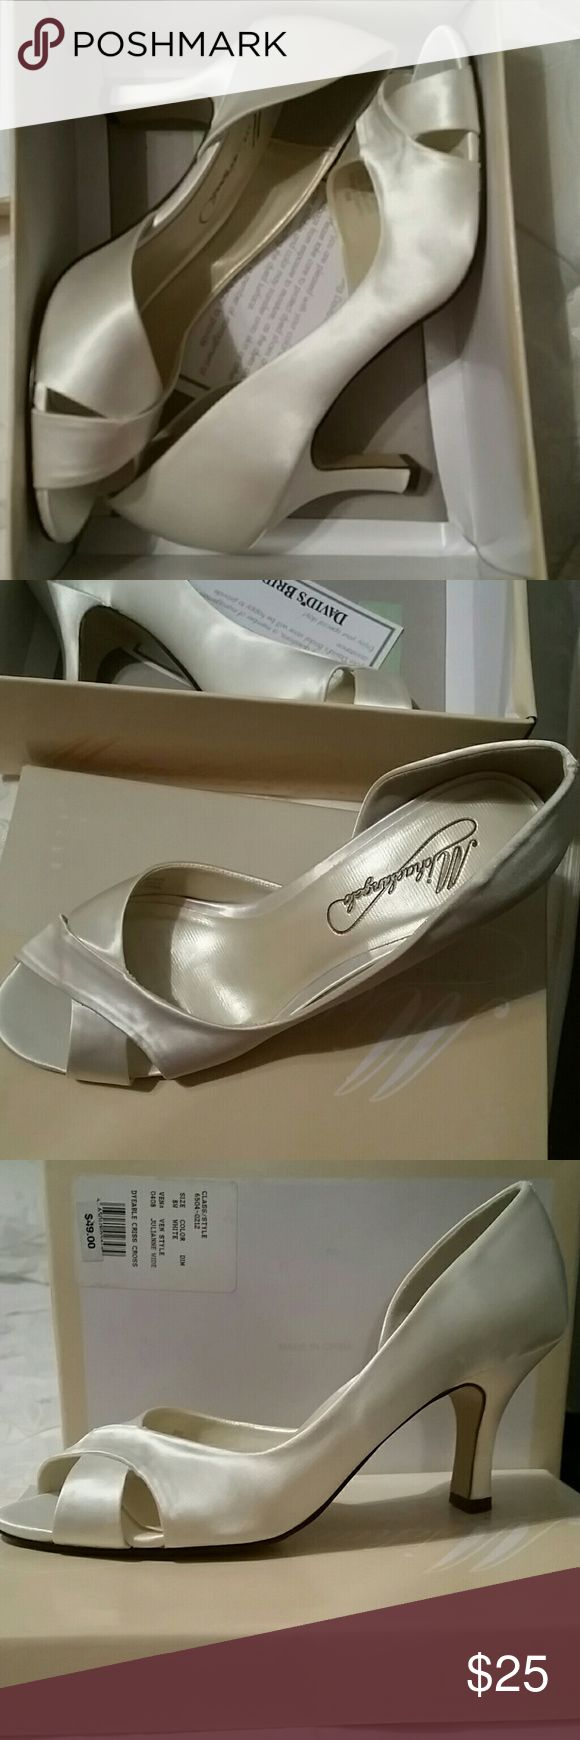 David's Bridal Shoe *SALE * Brand Michaelangelo. NEW  NEVER WORN OR DYED. 8W shoe . Style Julianne Wide. See photos for additional information /description. David's Bridal Shoes Heels